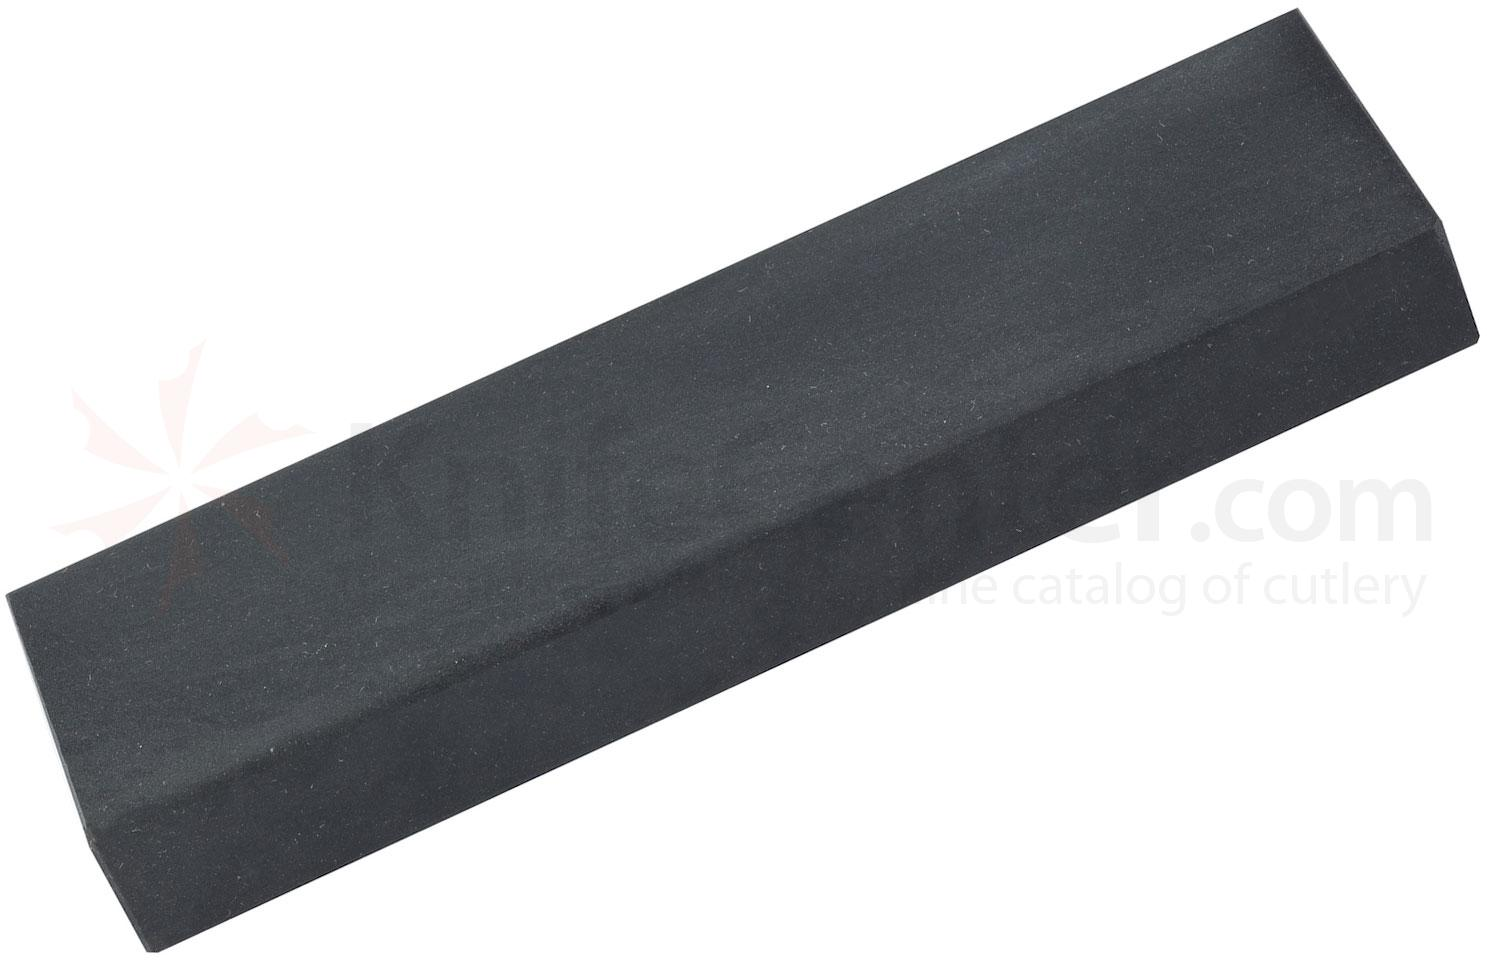 Hall Sharpening Stones 30033 Dunston Black Arkansas 4